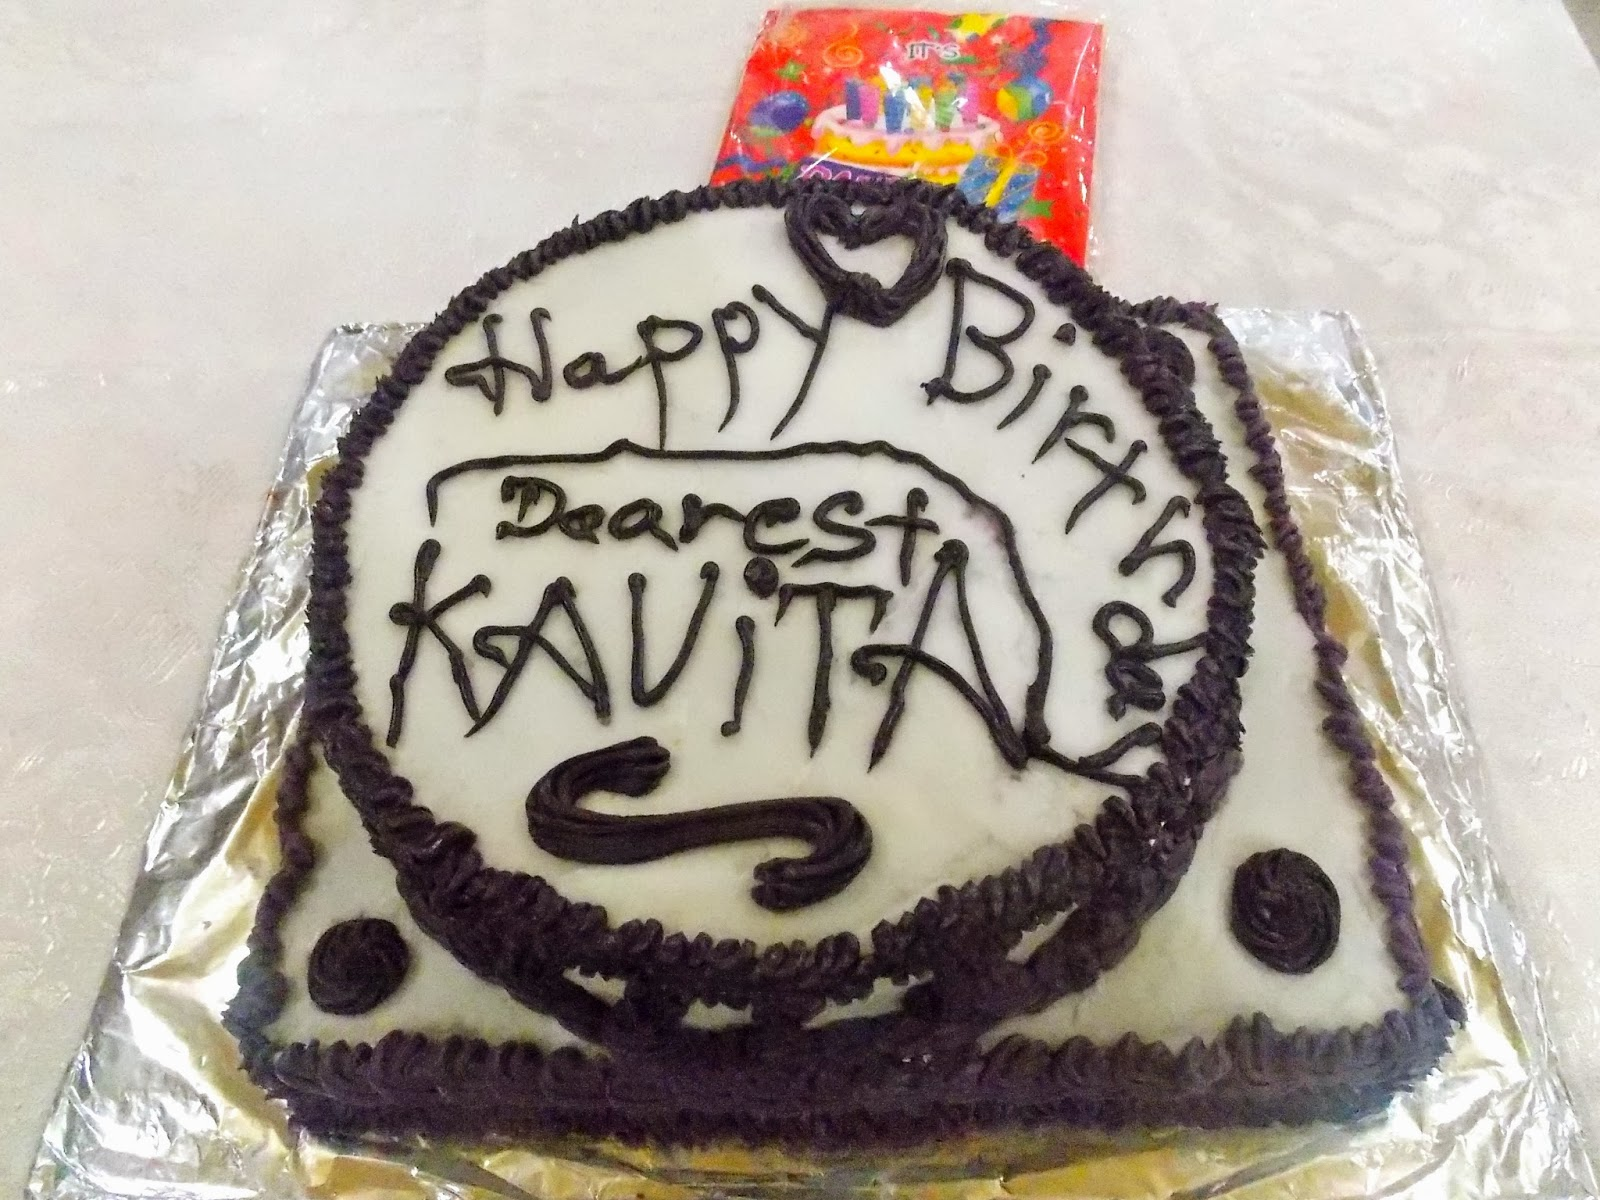 Cake Images Kavita : We travel not for trafficking alone: January 2014